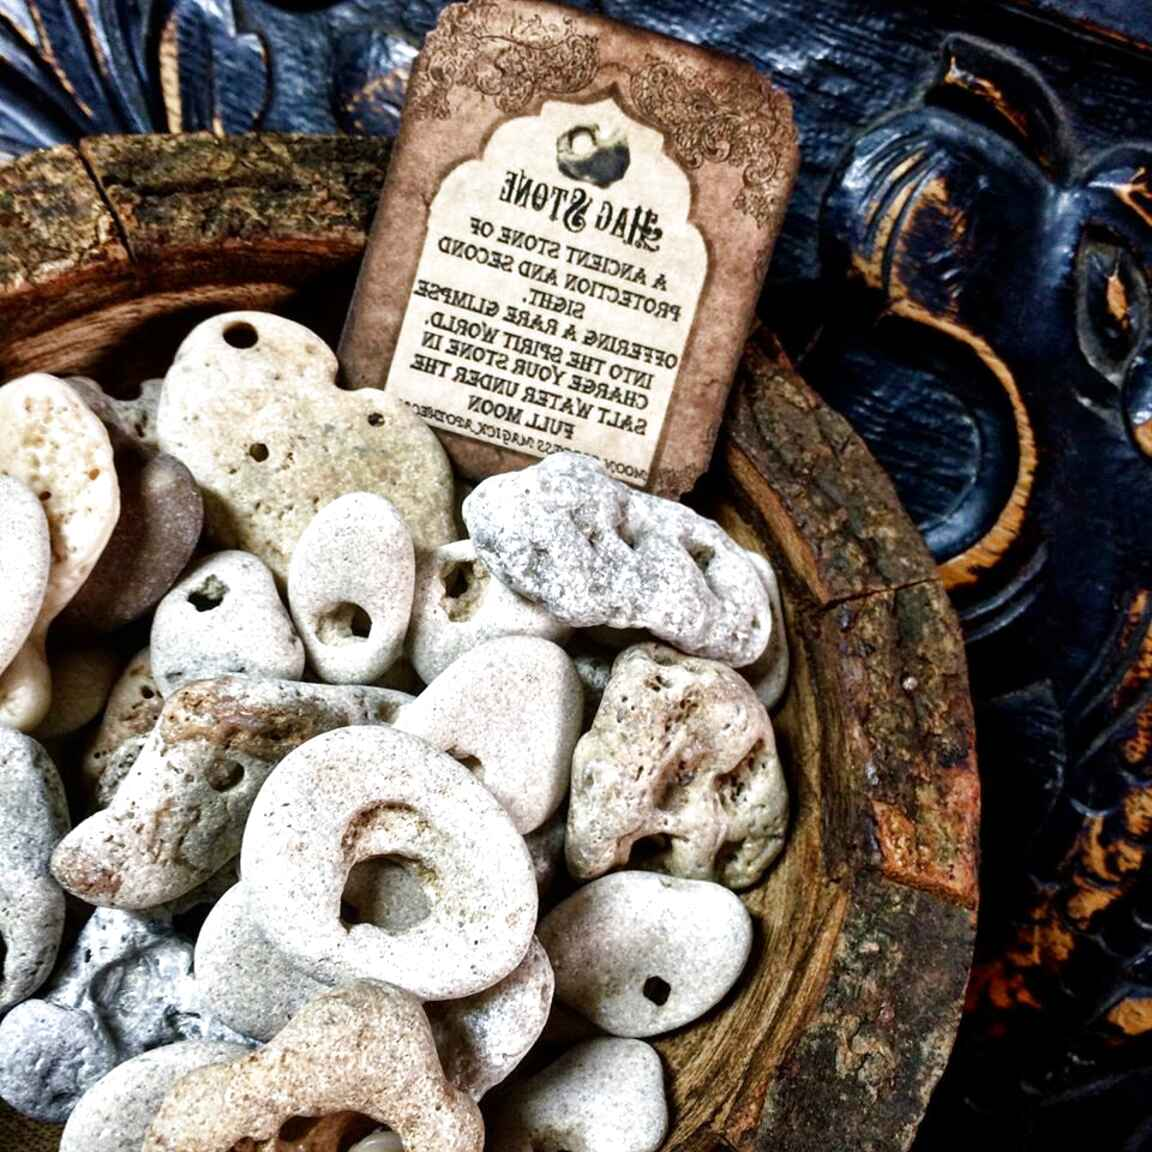 Hag Stone For Sale In Uk 31 Second Hand Hag Stones Zillow has 176 homes for sale in stone county ms. hag stone for sale in uk 31 second